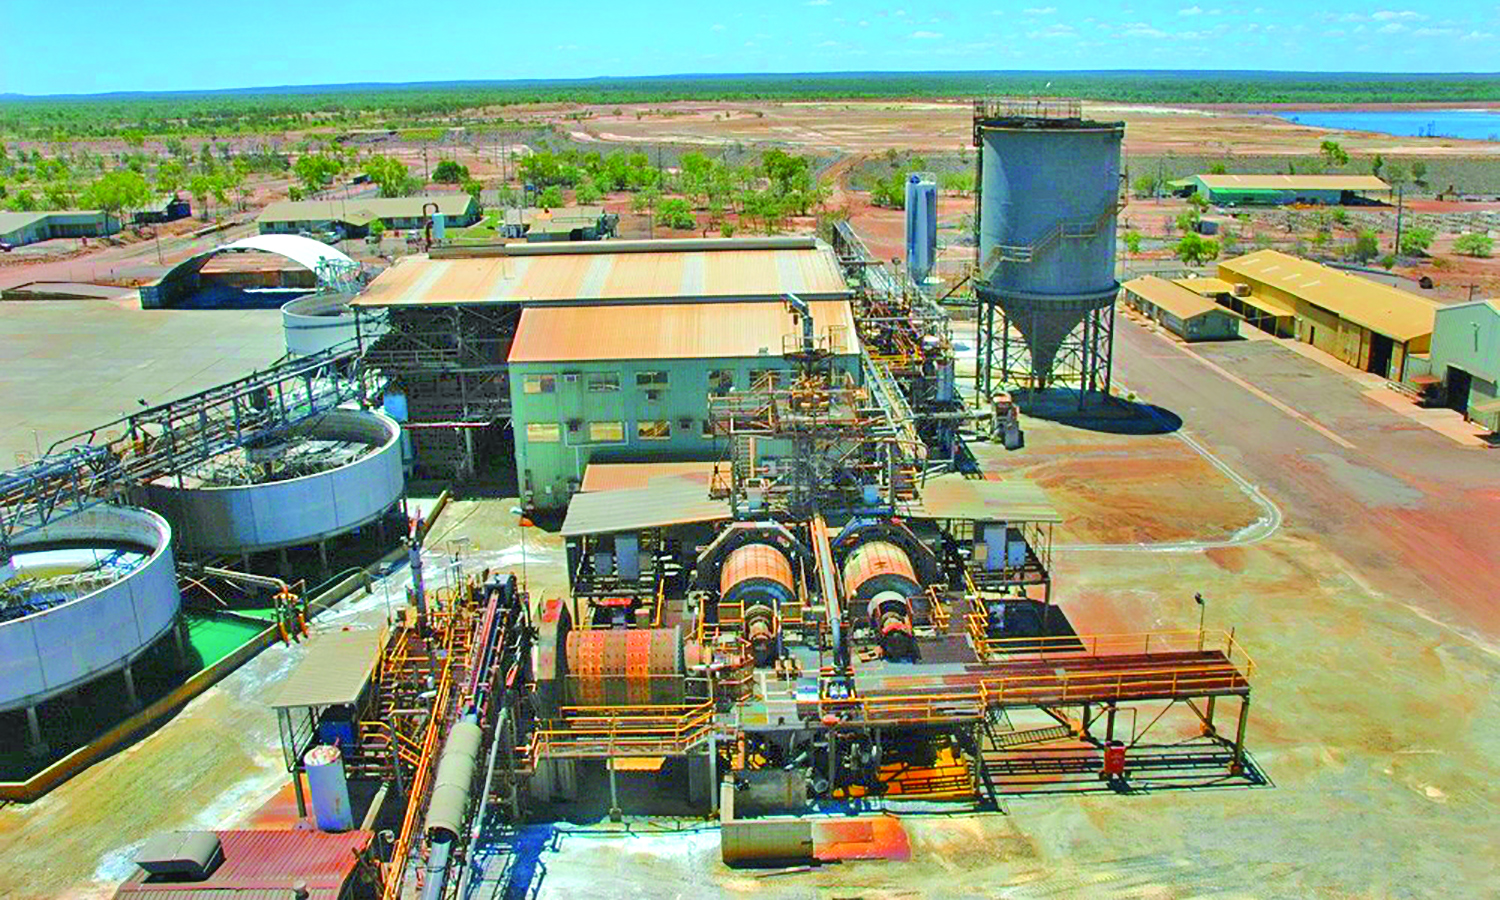 Red River Resources reports work is under way on renovating the 600,000-mt/y-capacity Thalanga zinc mill, which has been inactive since 2012. (Photo: Red River Resources)